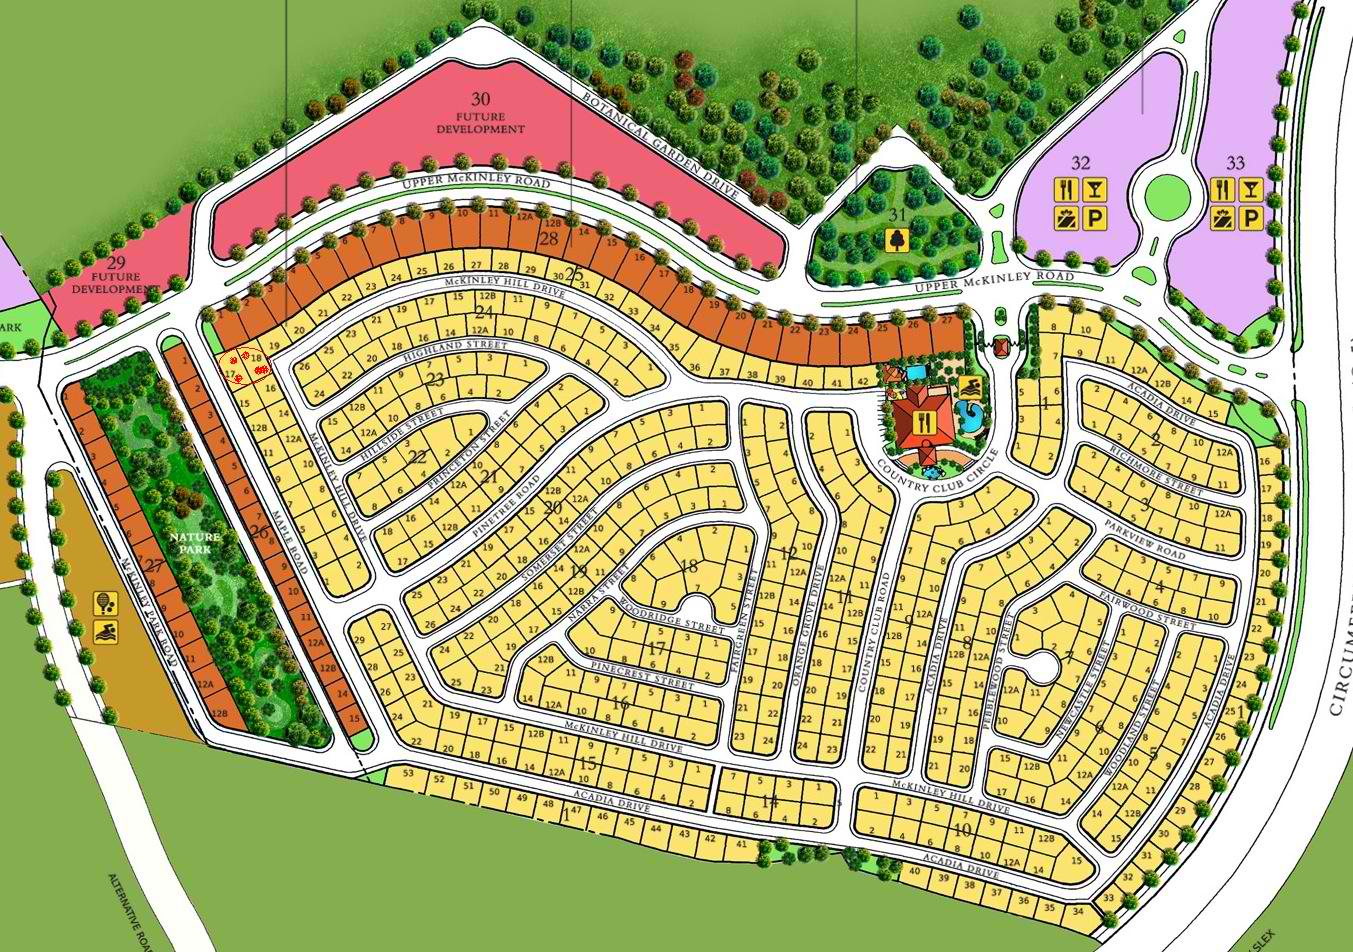 FOR SALE: Lot / Land / Farm Manila Metropolitan Area 3